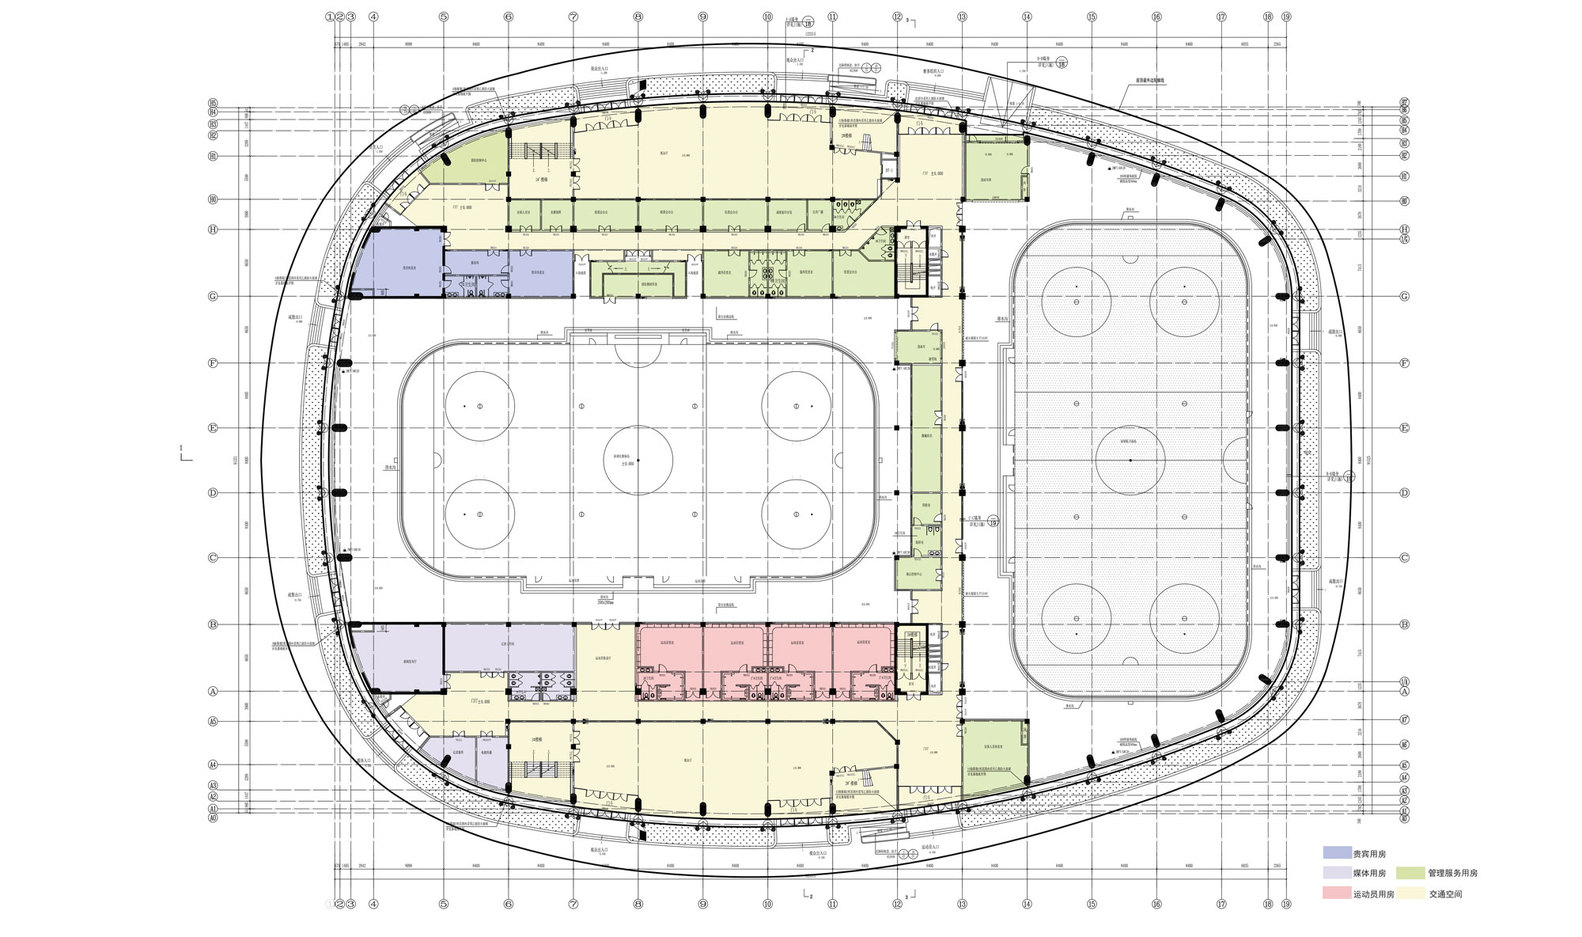 Ice Sports Center Of The 13th China National Winter Games,Hocky Place 1st  Floor Plan